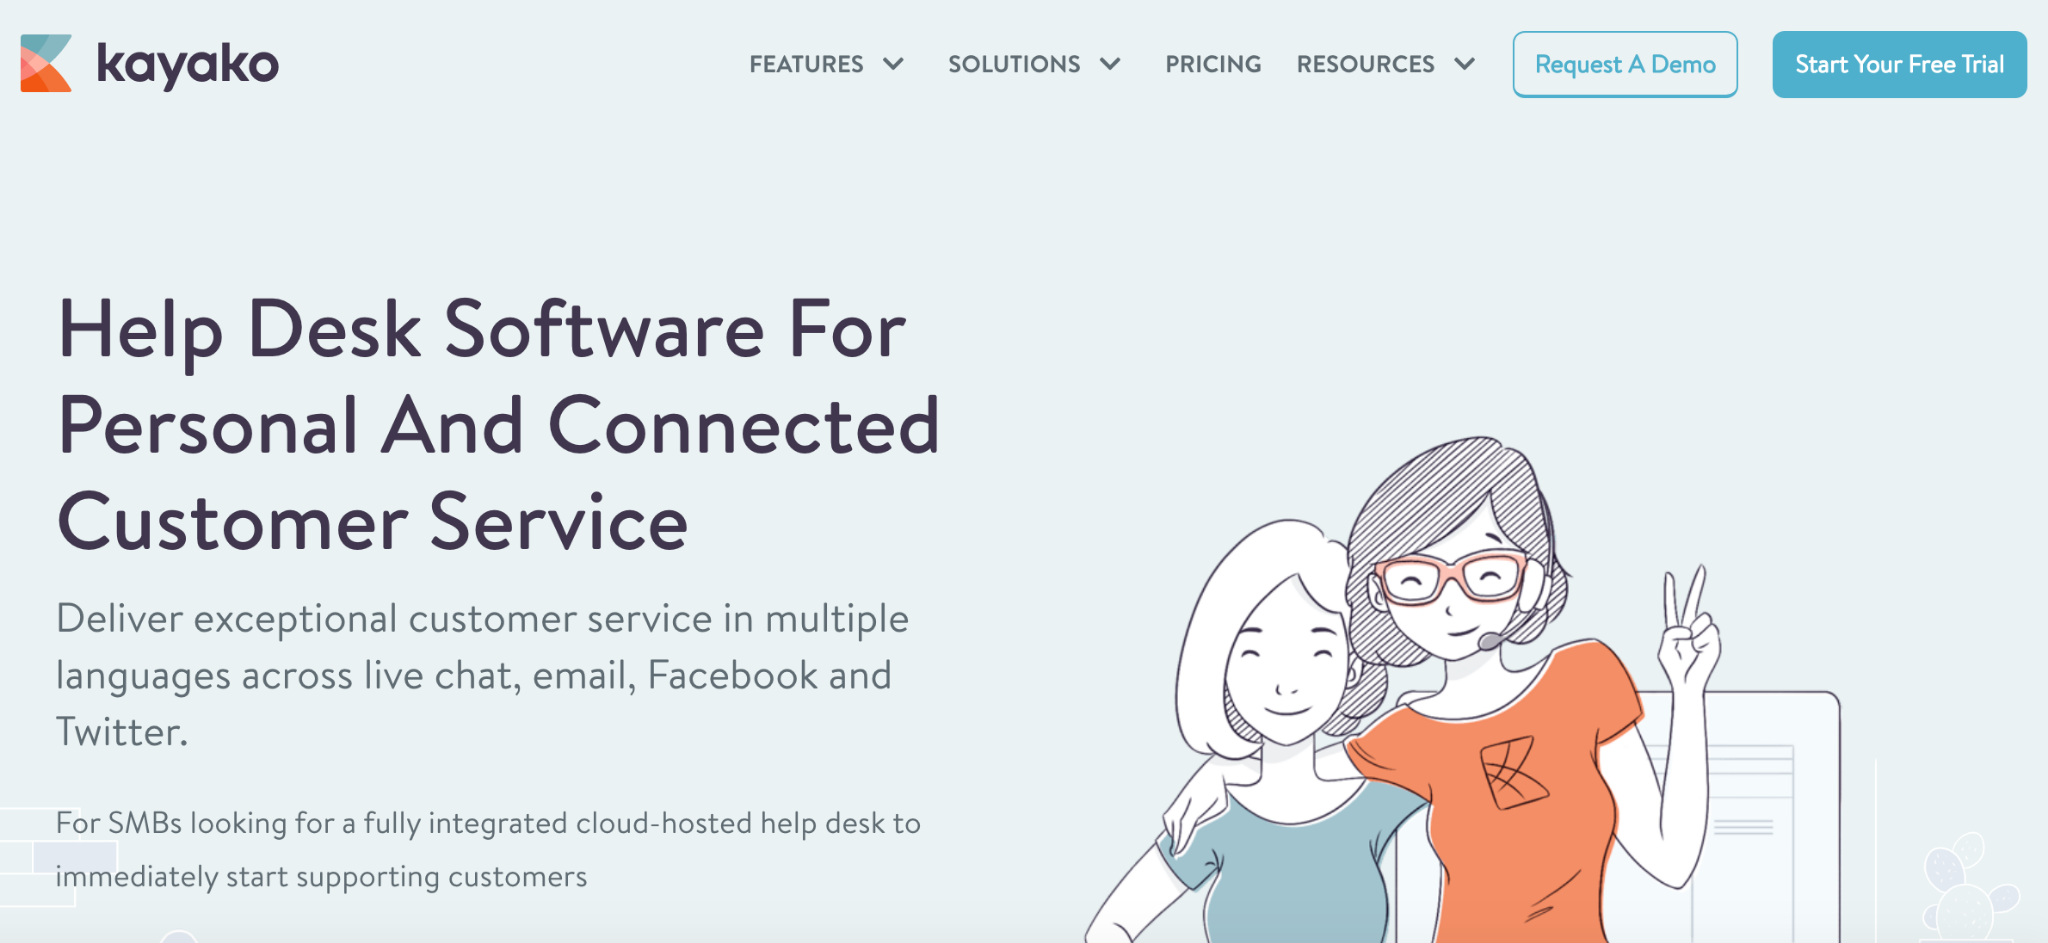 Kayako homepage: Help Desk Software for Personal and Connected Customer Service